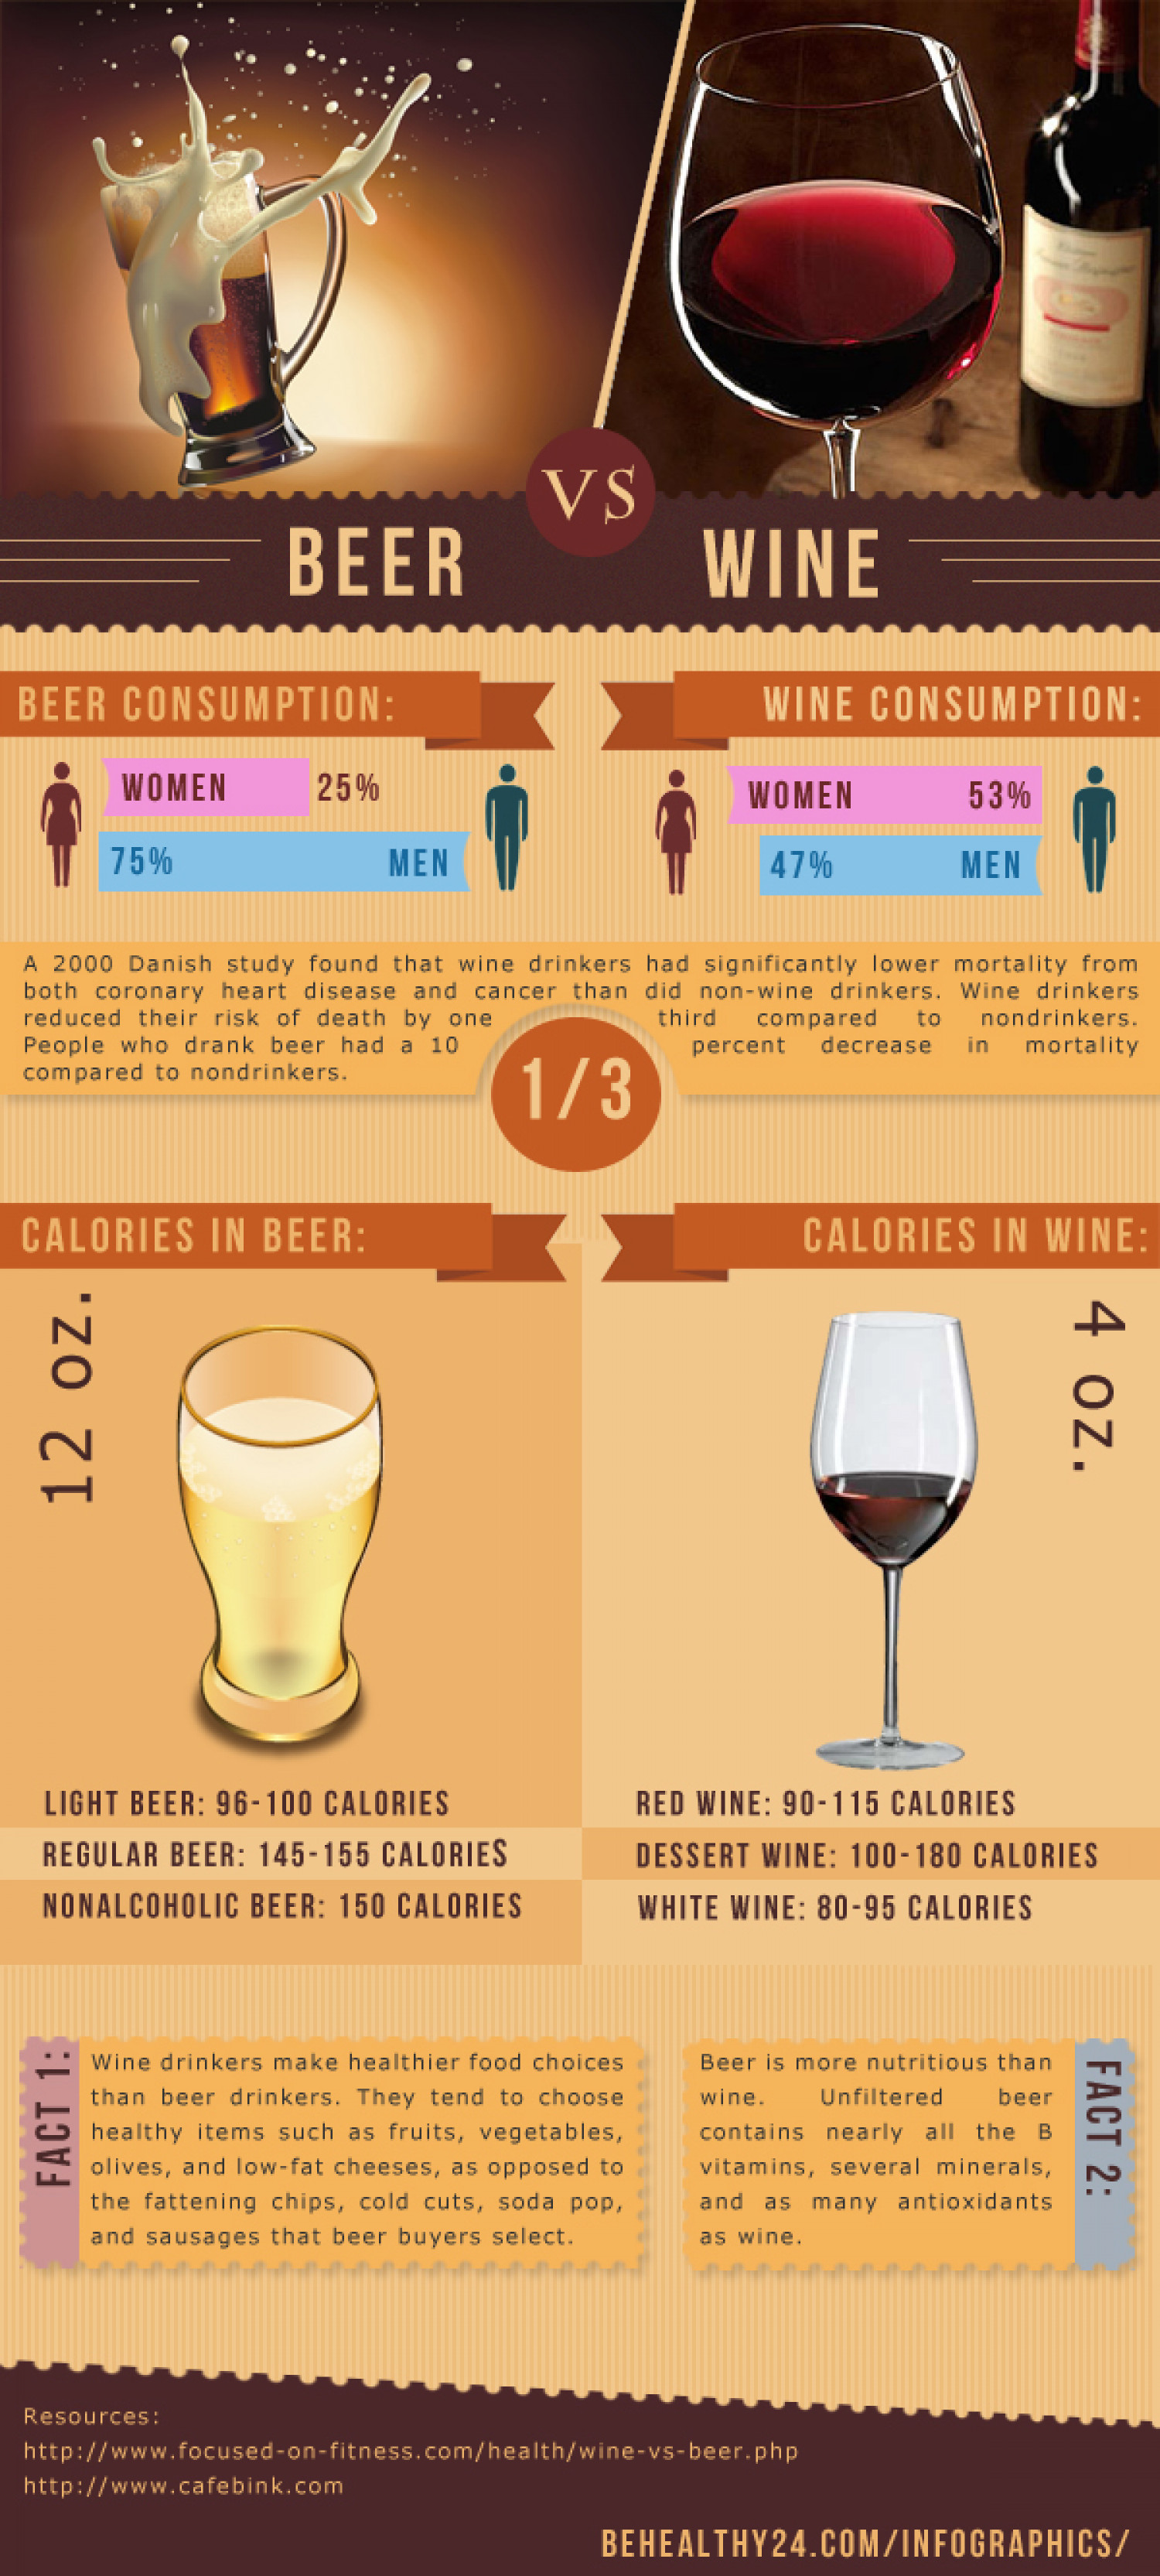 Wine vs Beer Infographic